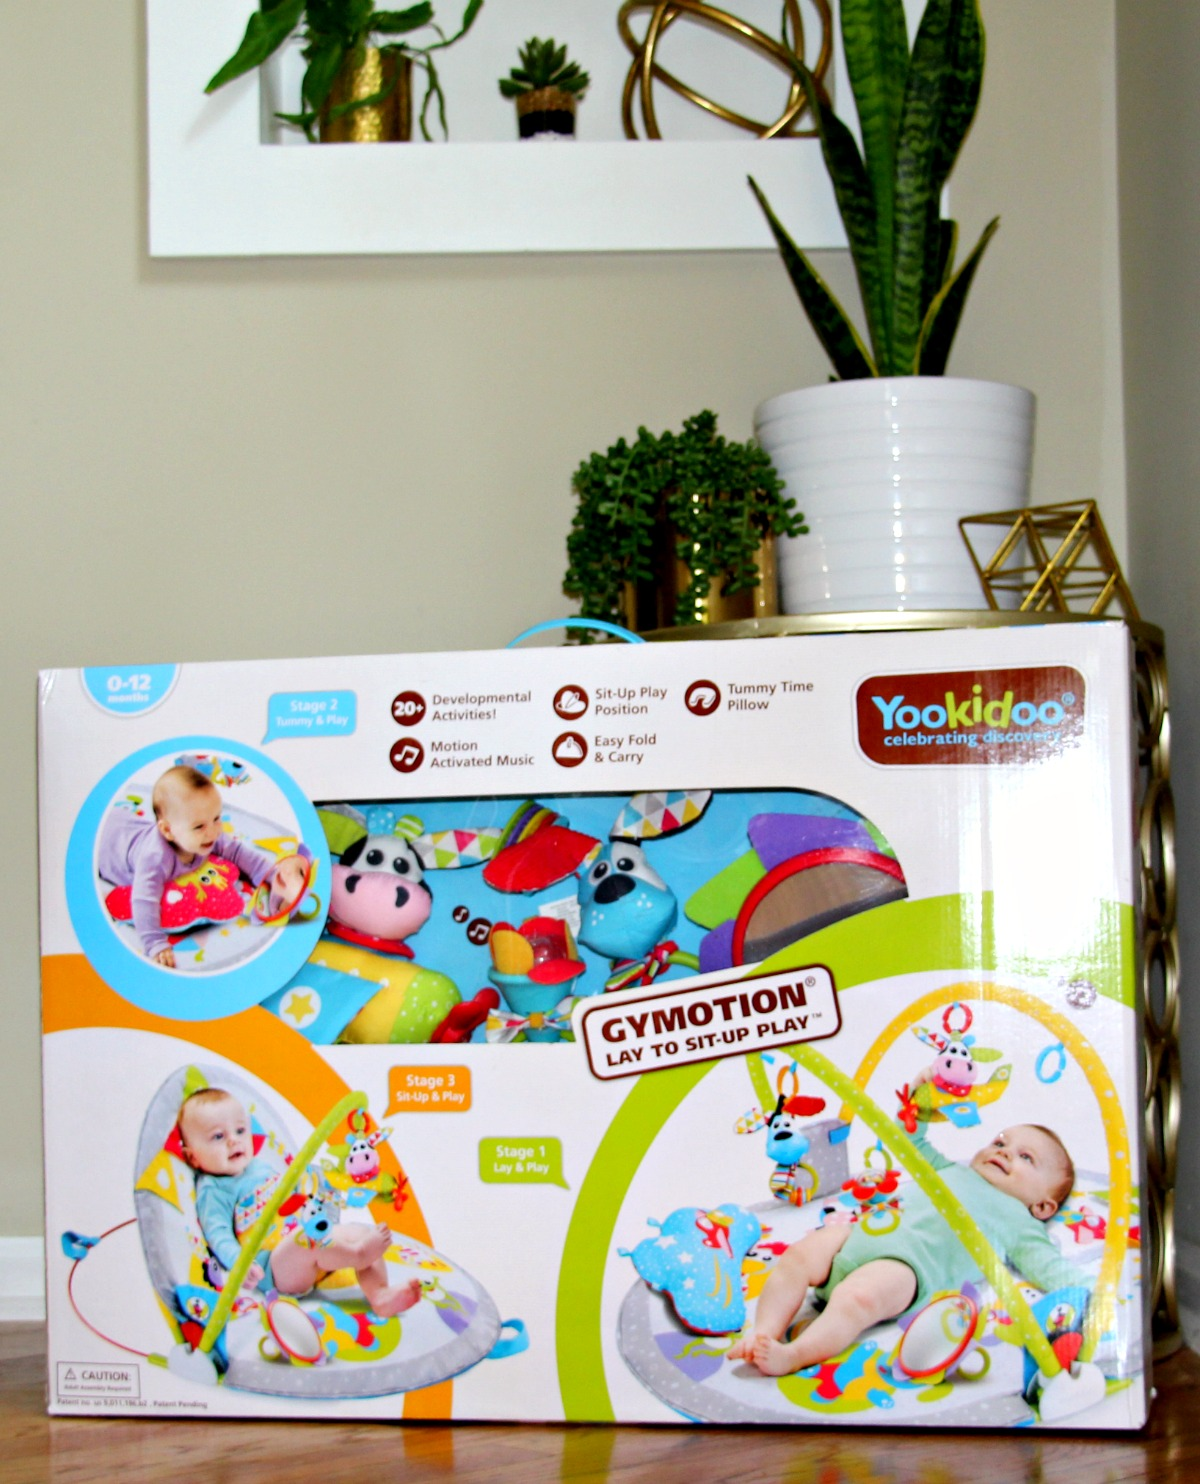 Yookidoo Gymotion Lay to Sit-Up Play Mat